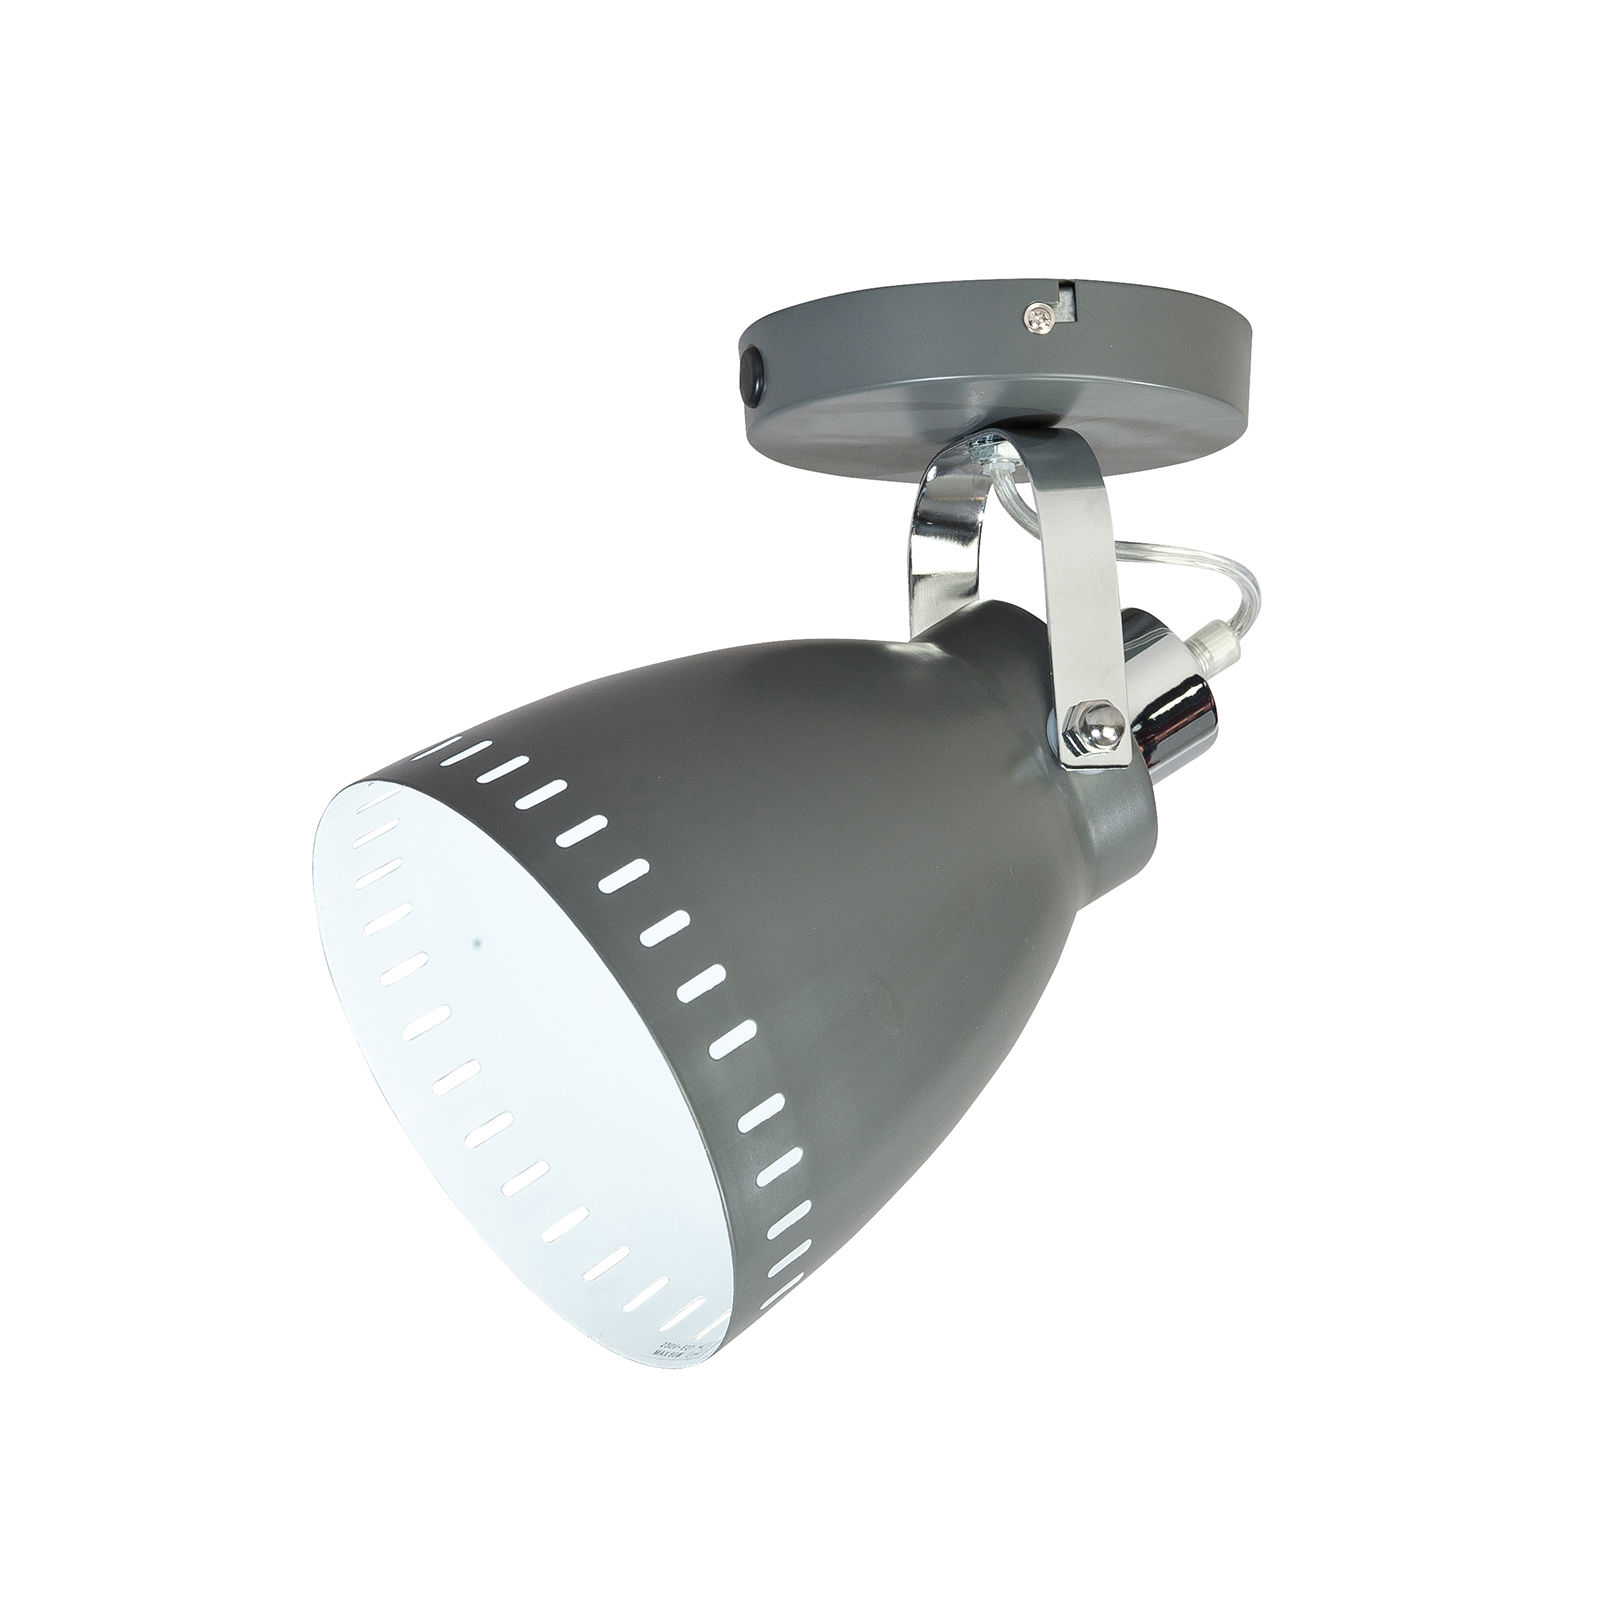 OUTLET - Acate plafondlamp ETH grijs/chroom